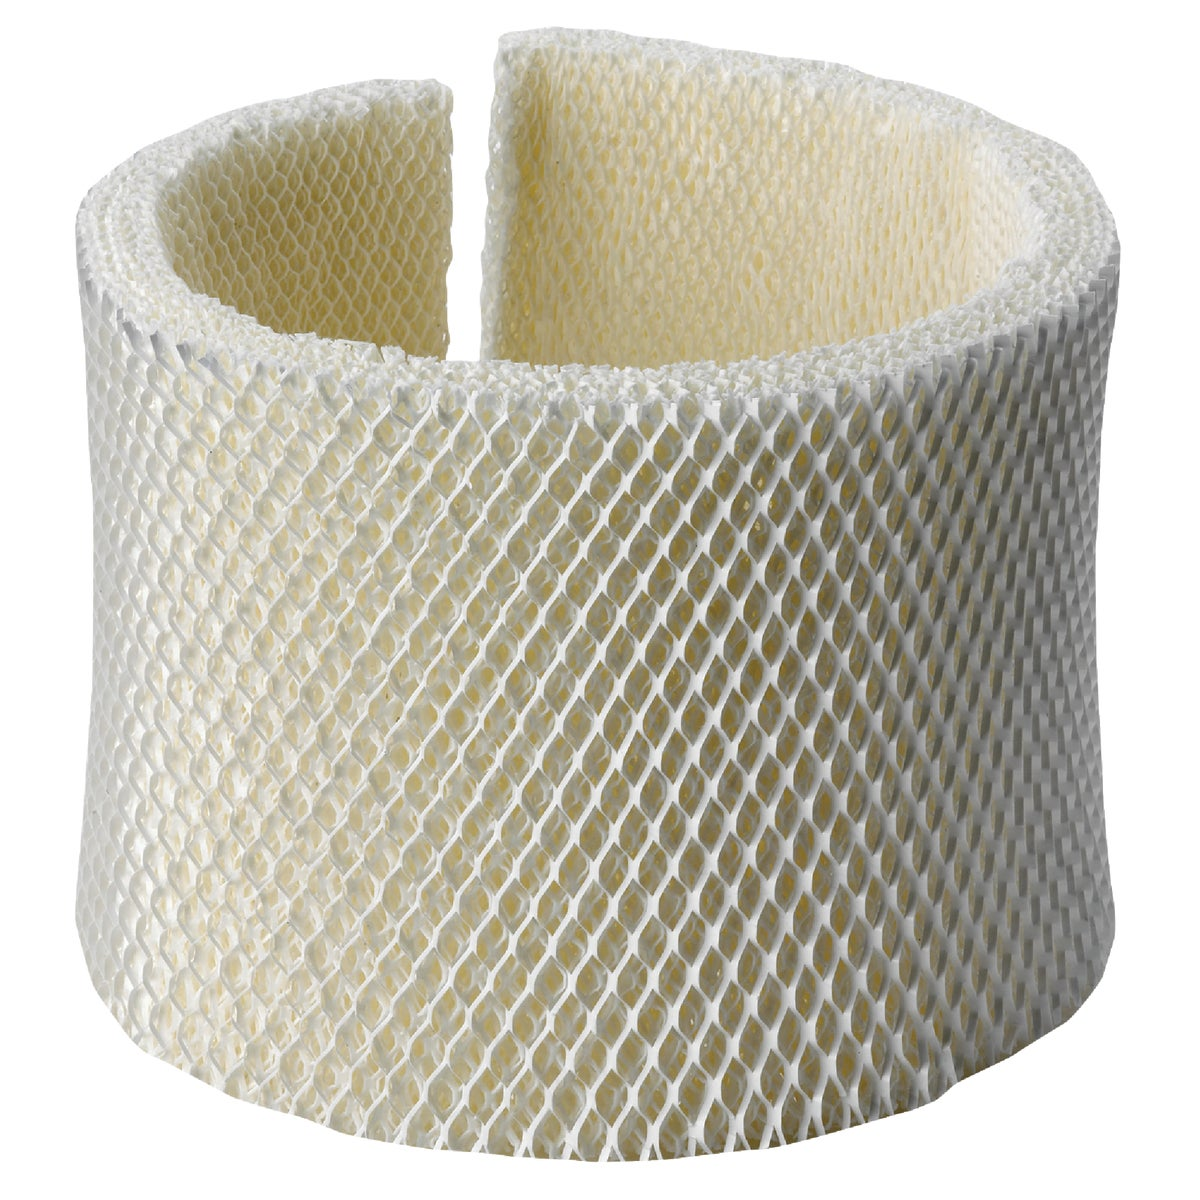 REPLACEMENT HUMID FILTER